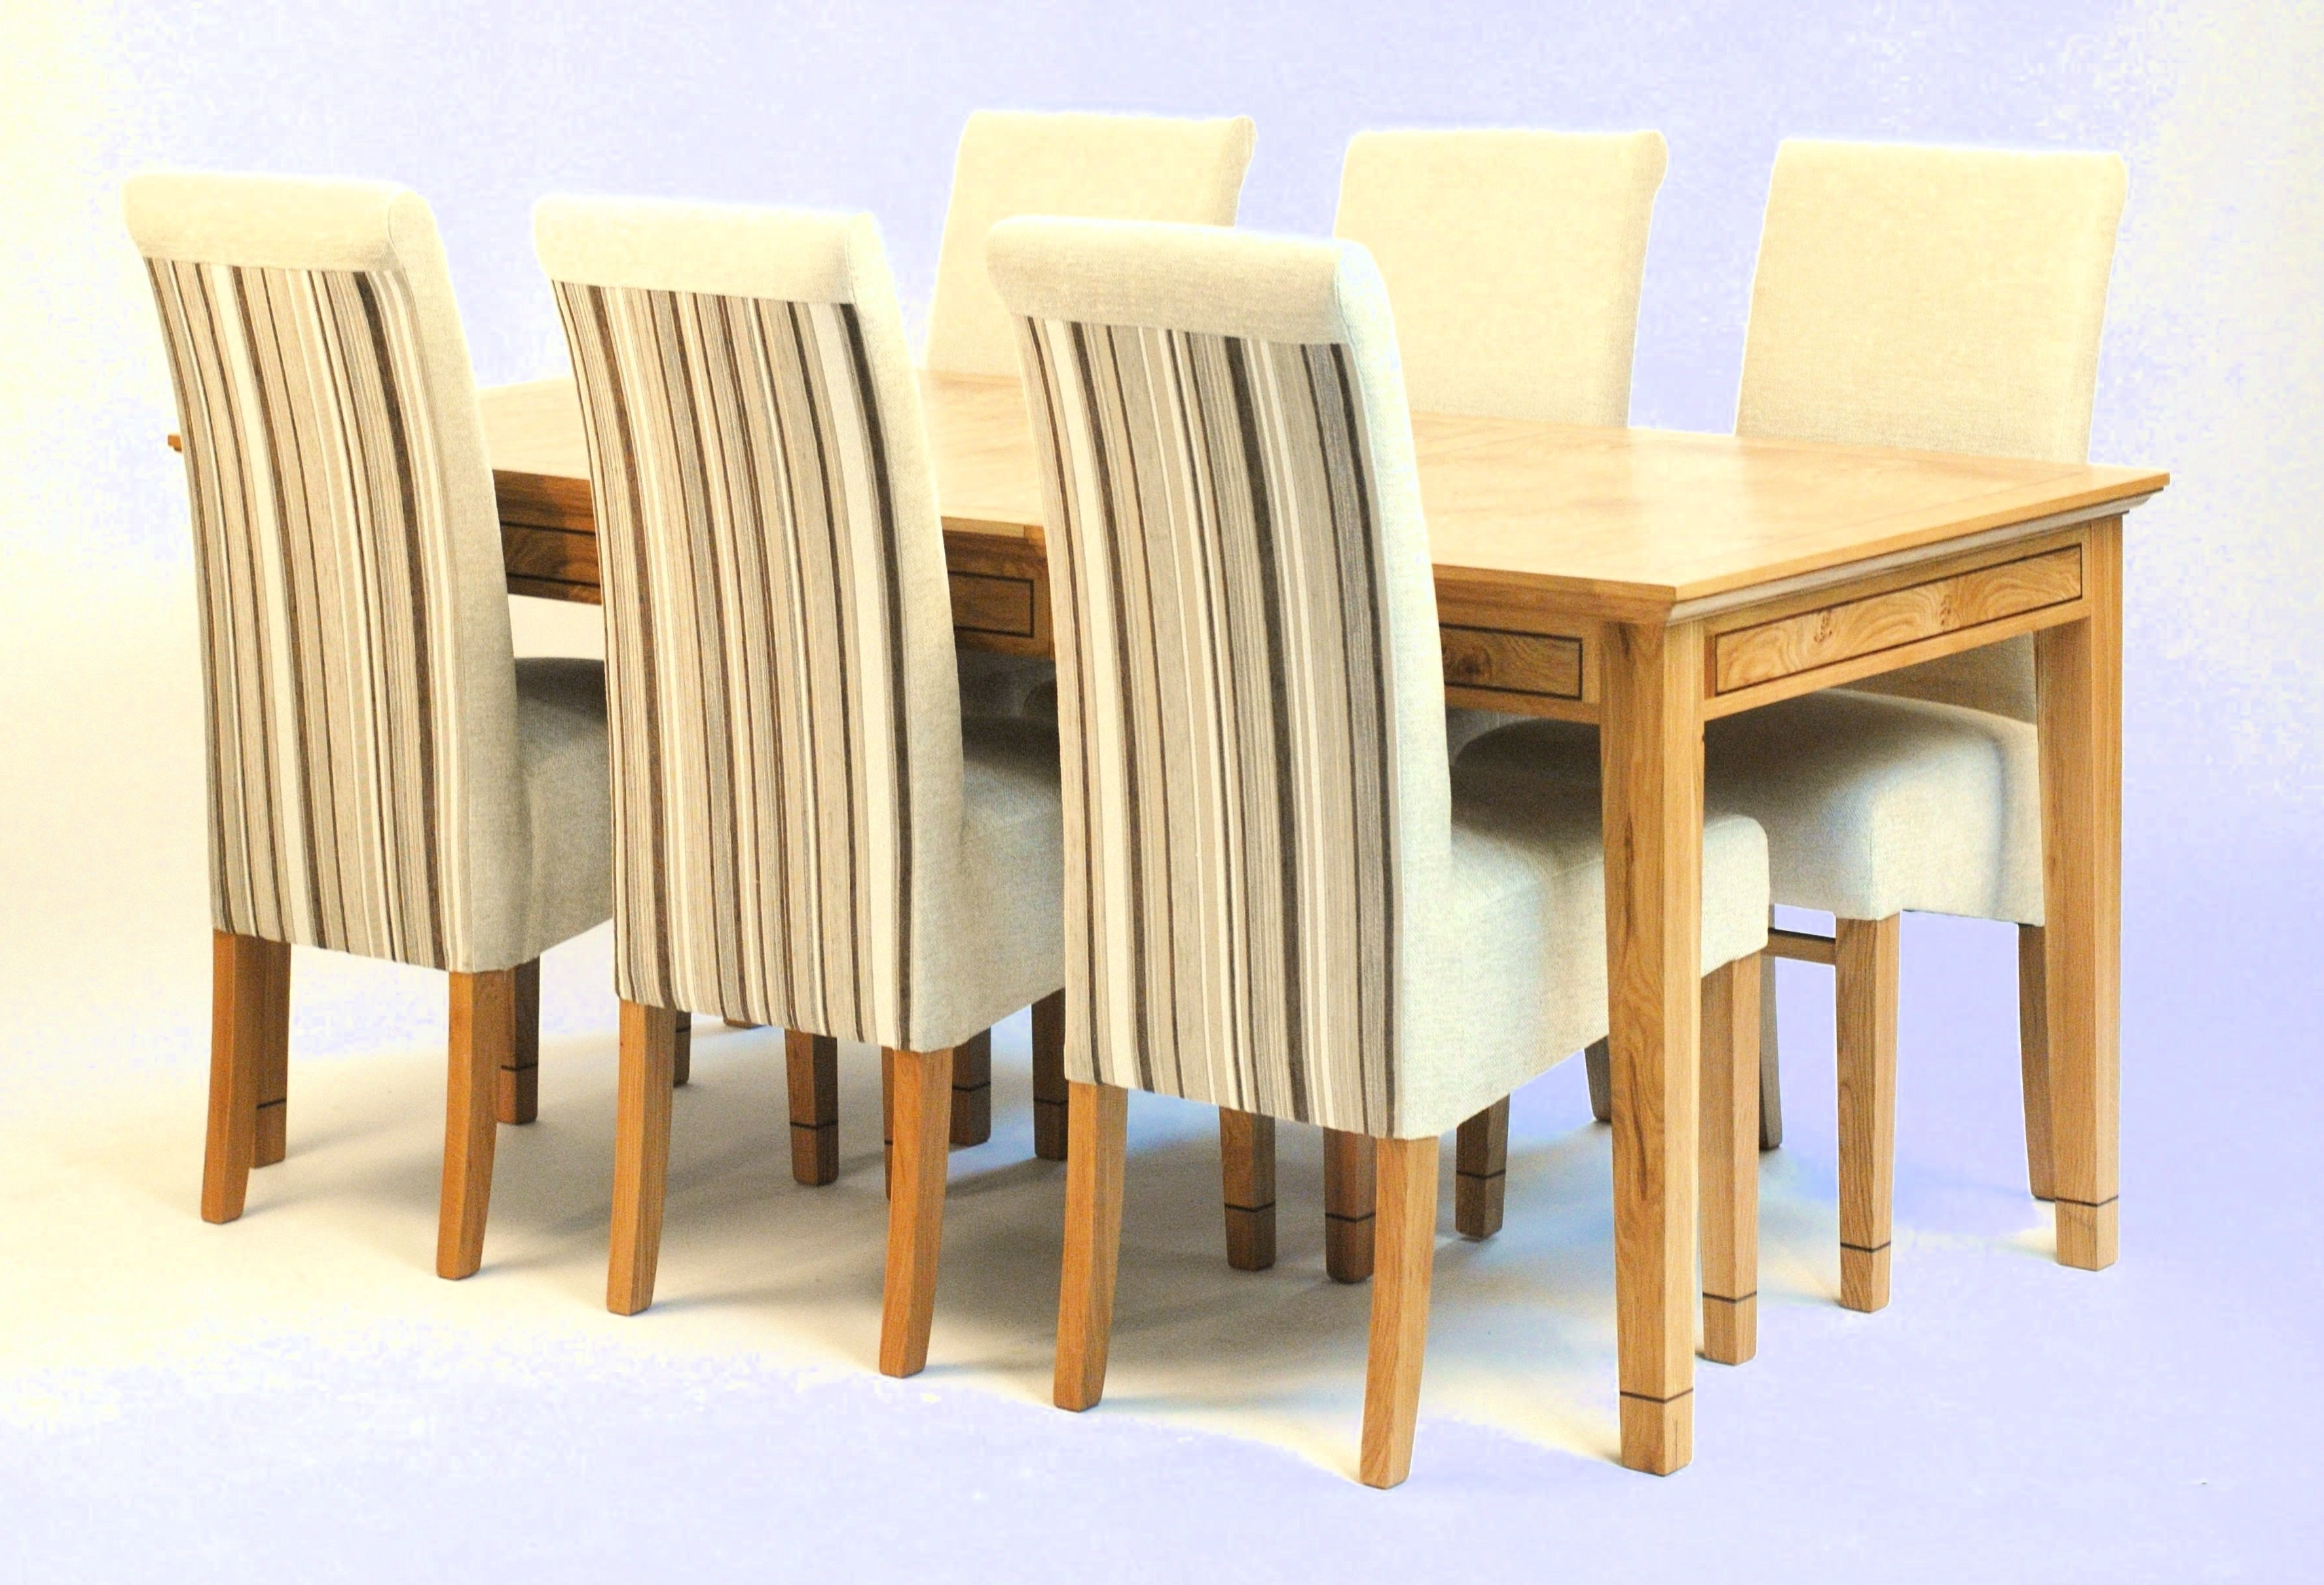 Oak Extending Dining Table & 6 Chairs Intended For Best And Newest Oak Dining Tables With 6 Chairs (View 19 of 25)